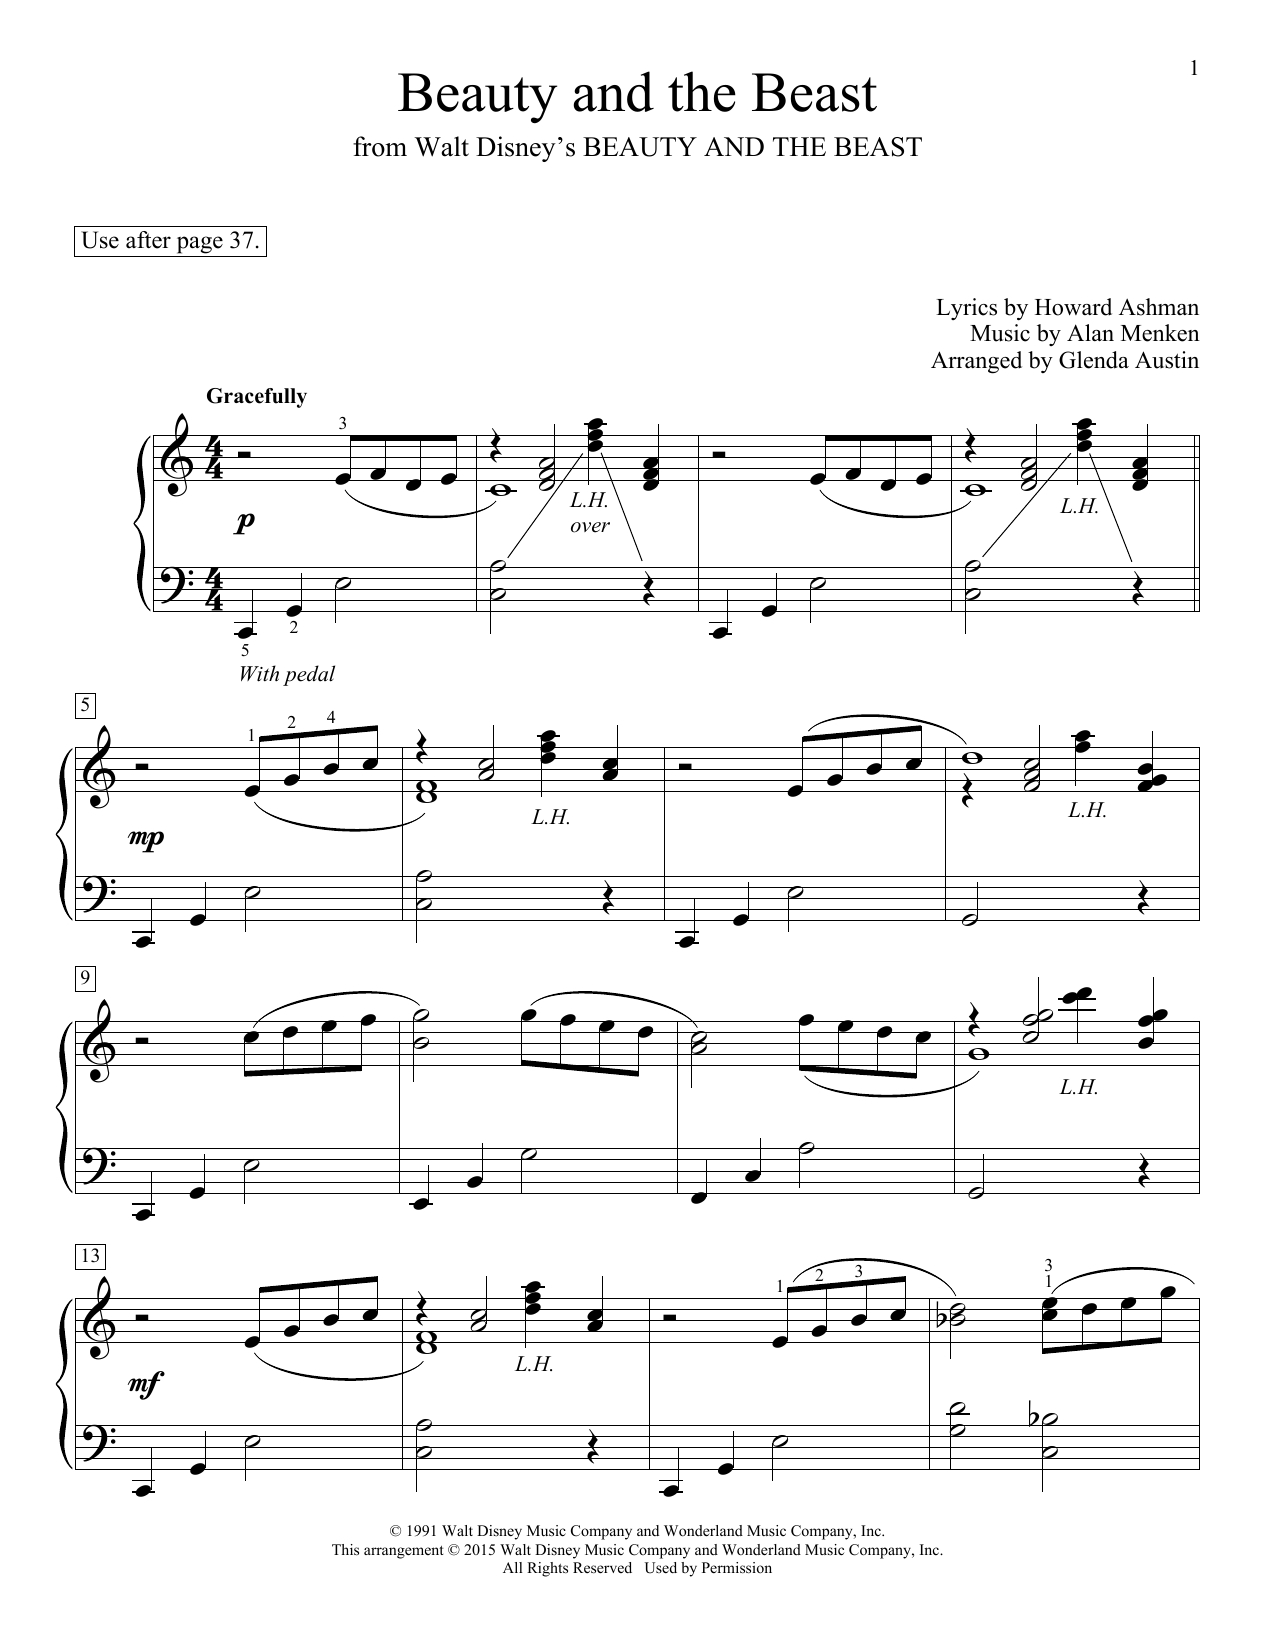 Beauty And The Beast Piano Sheet Musicceline Dion & Peabo Bryson - Beauty And The Beast Piano Sheet Music Free Printable